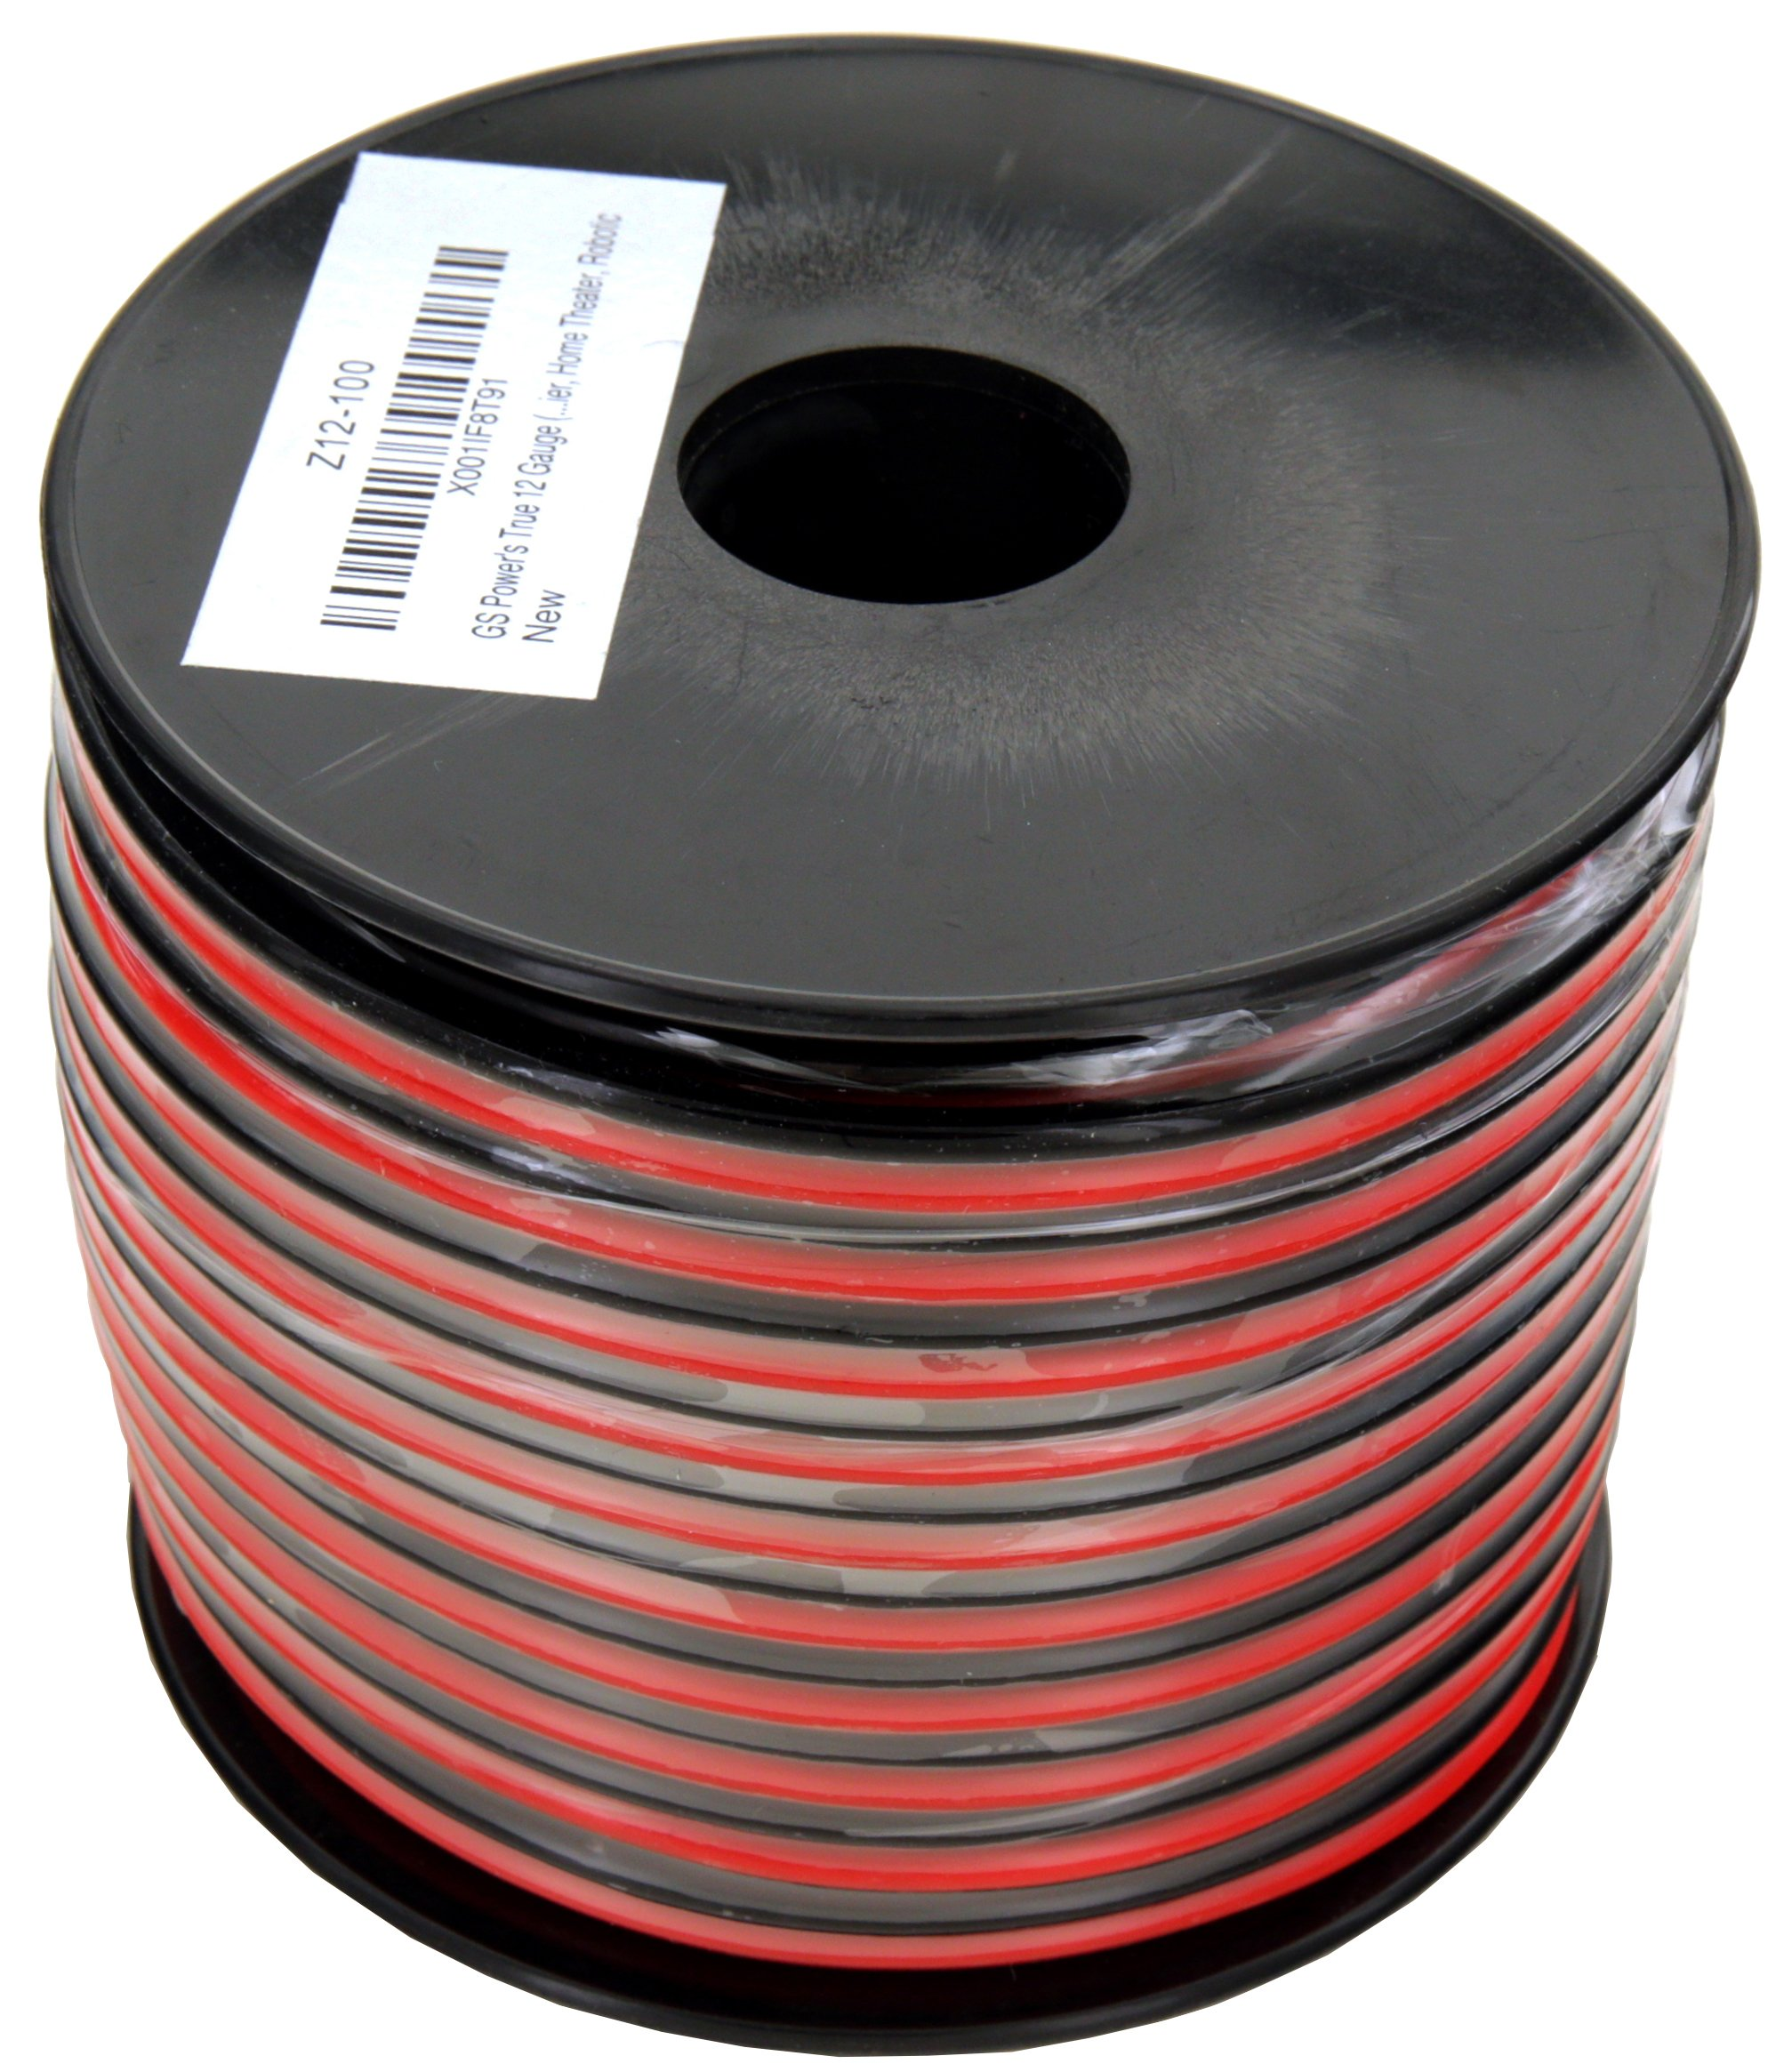 GS Power's True 12 Gauge (American Wire Ga) 100 feet 99.9% OFC stranded oxygen free copper, Red/Black 2 Conductor Bonded Zip Cord Power/Speaker Cable for Car Audio Amplifier, Home Theater, Robotic by GS Power